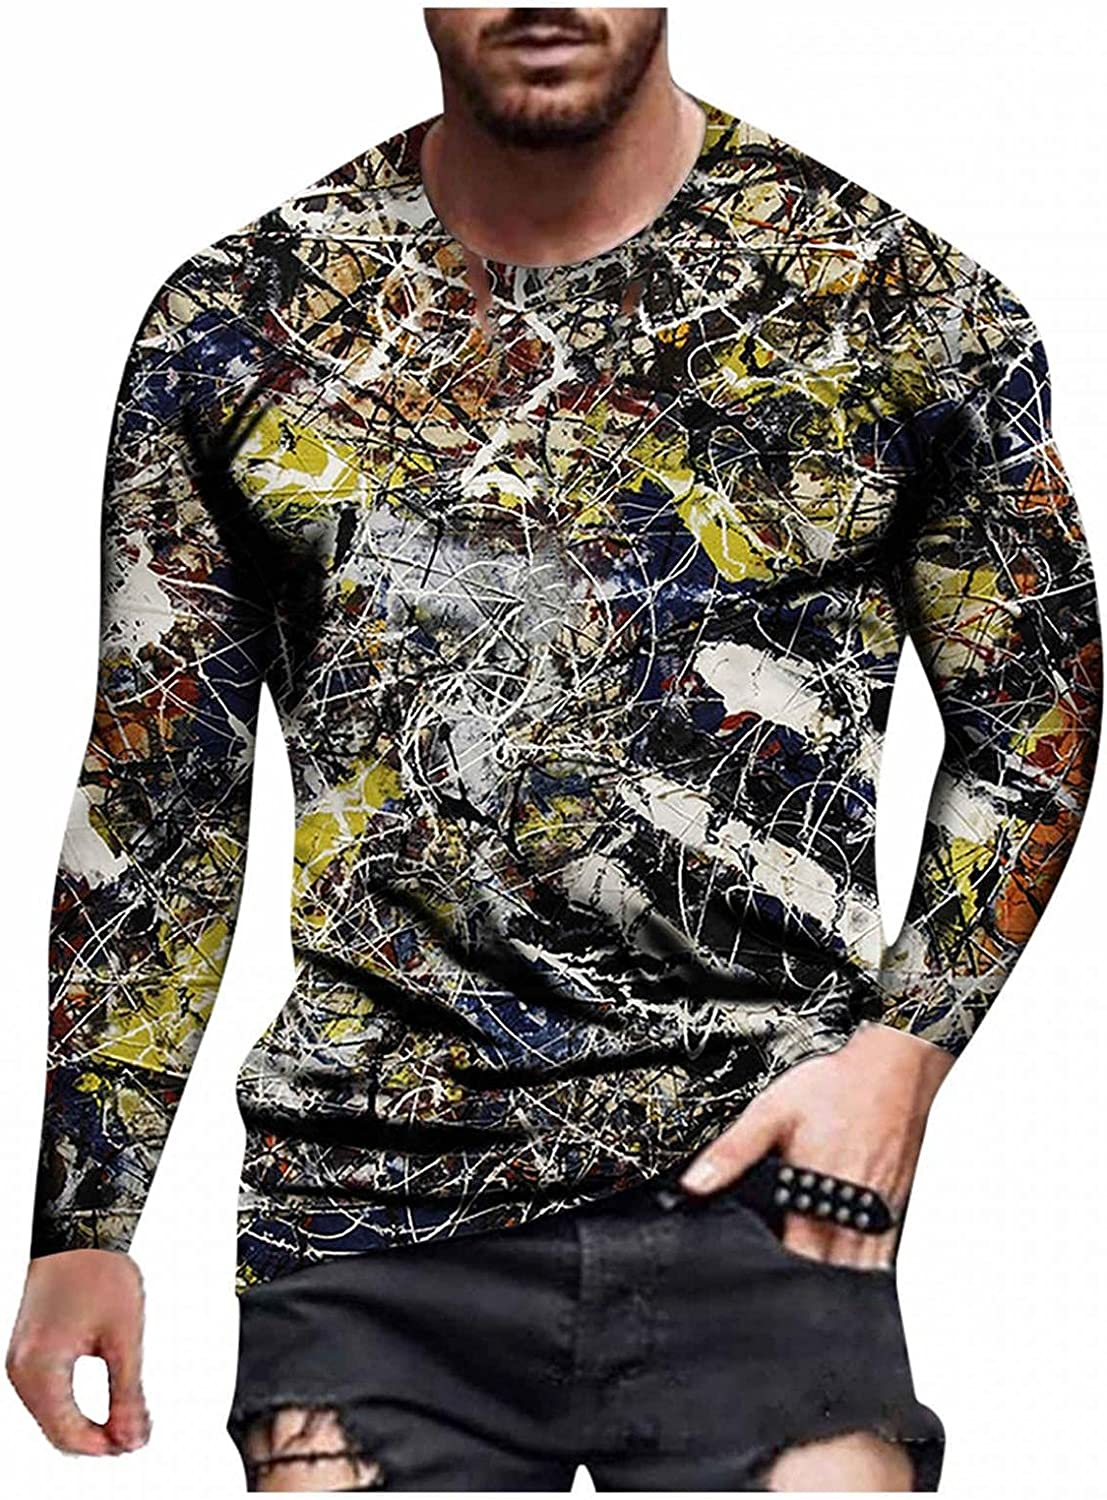 Aayomet T Shirts for Men Vintage Printed Long Sleeve Round Neck T-Shirt Casual Sport Workout Athletic Tee Tops Shirts